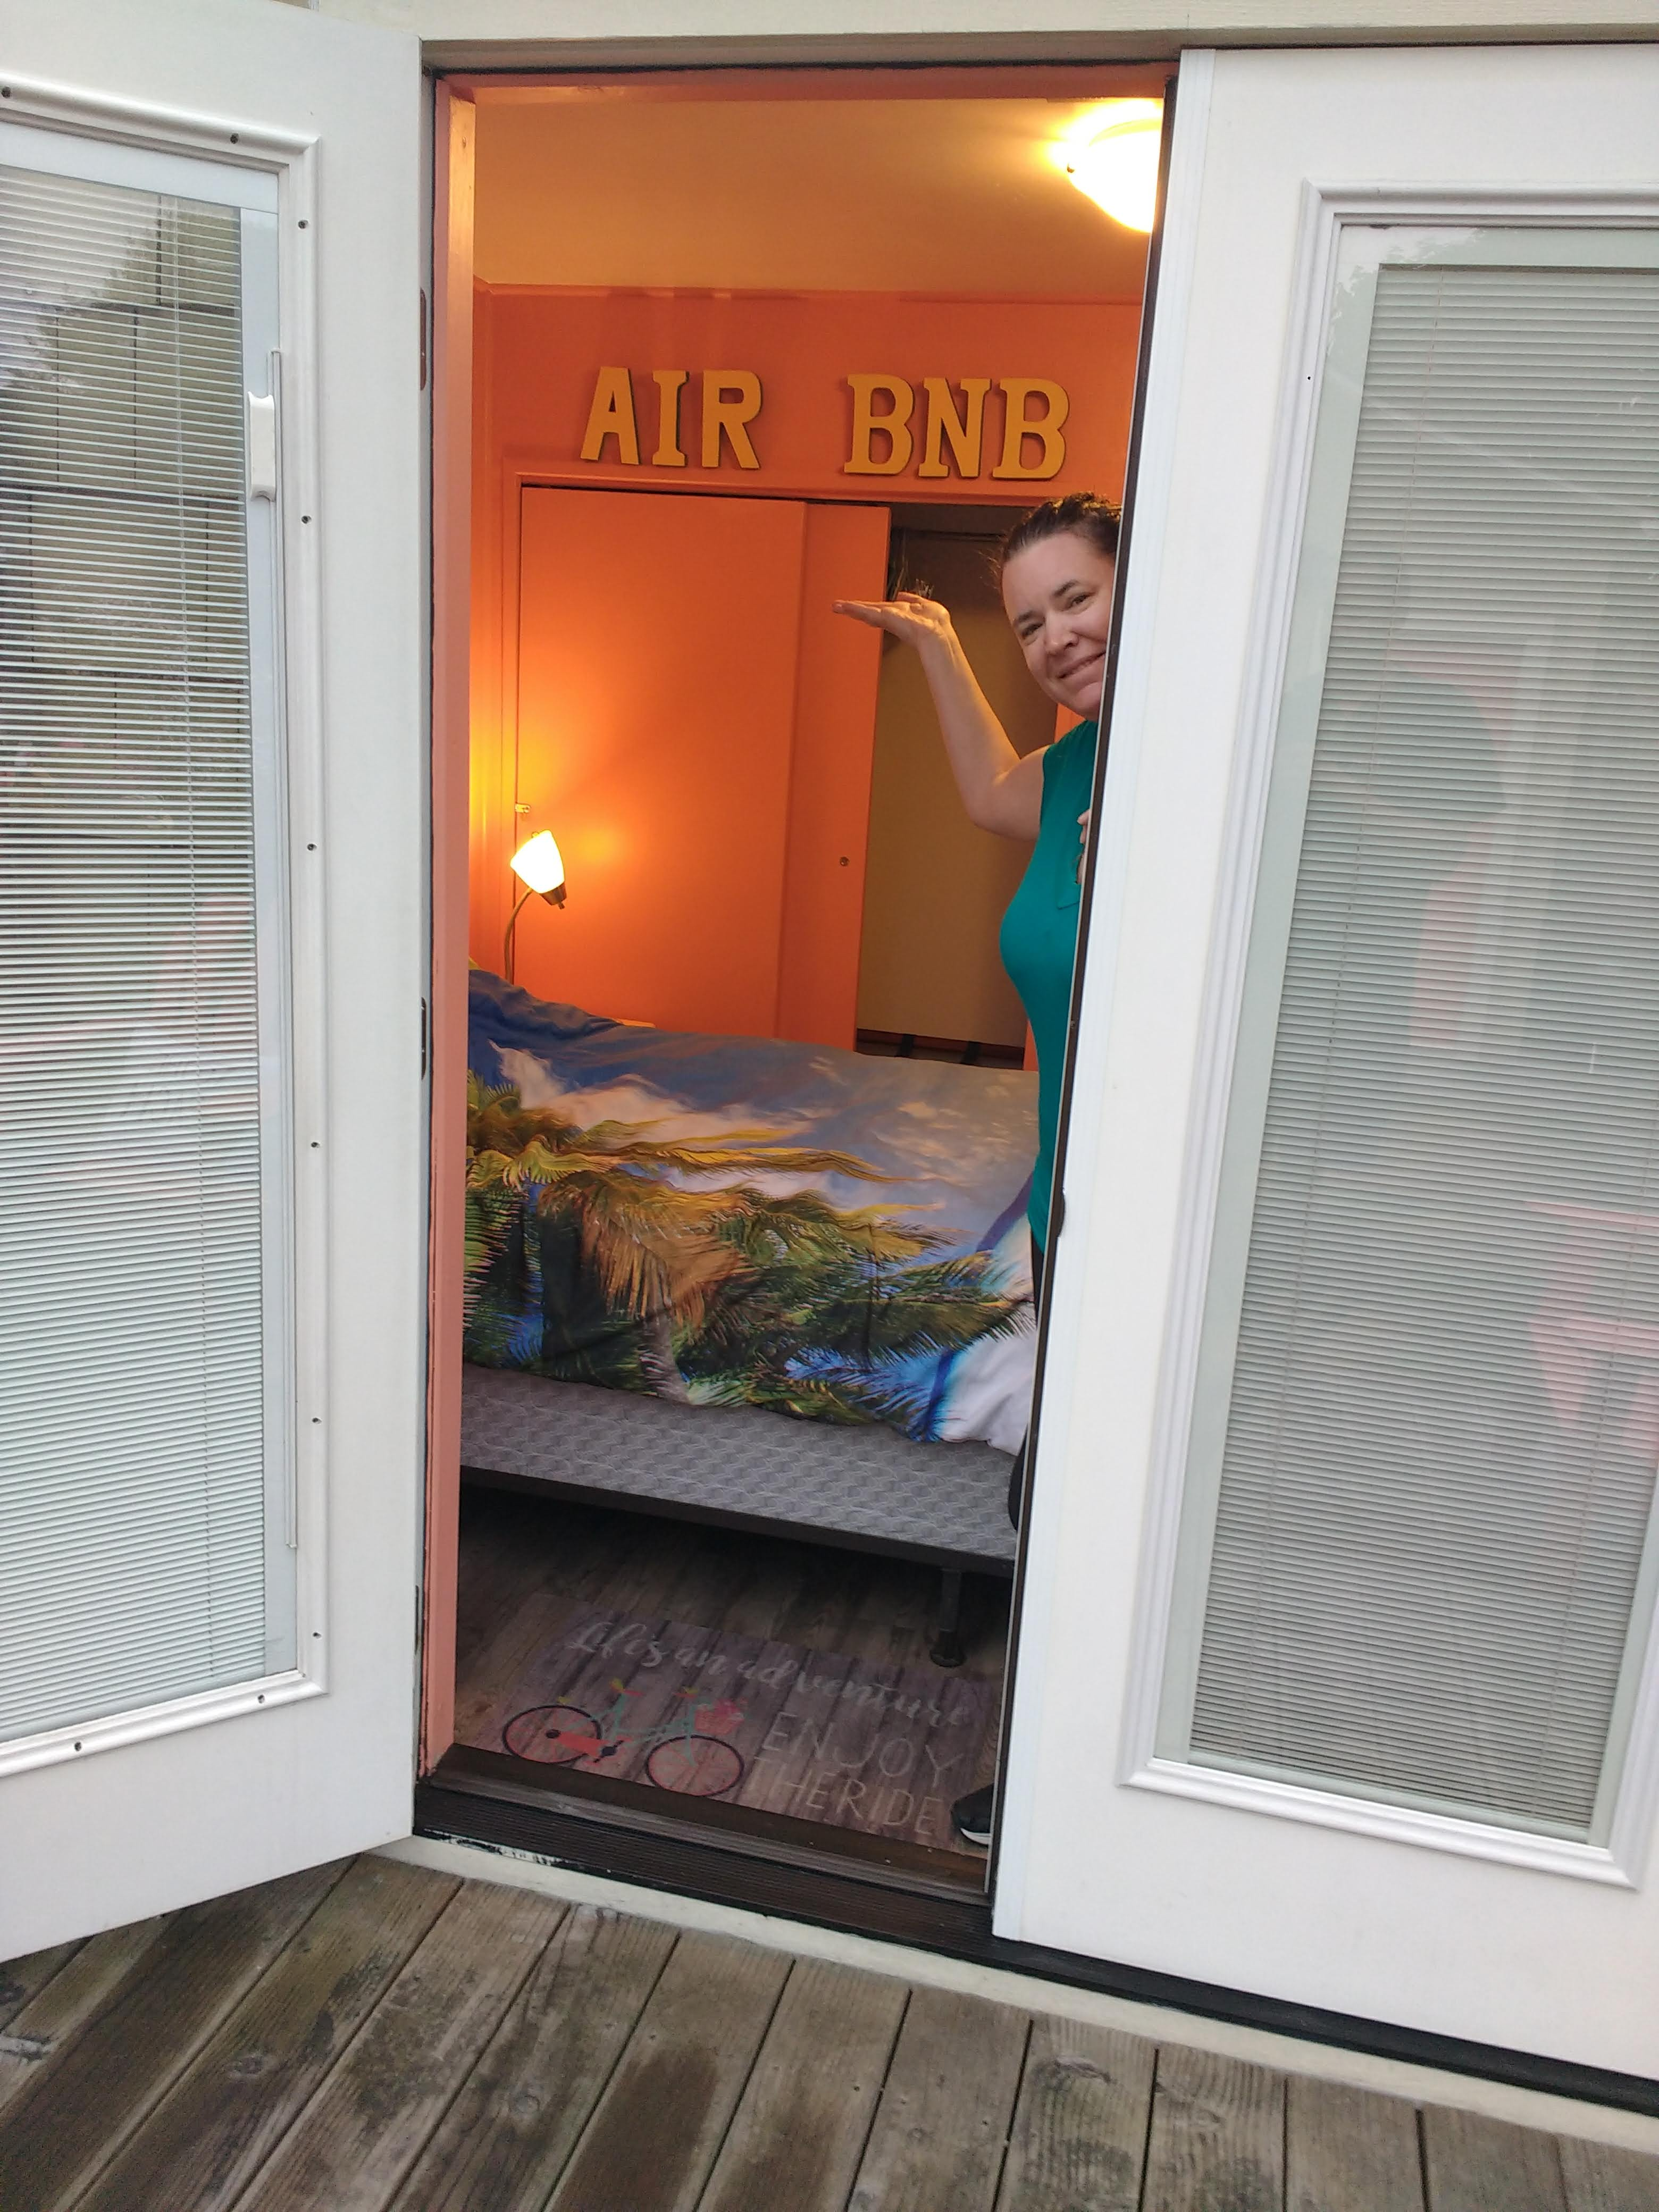 tiny travel chick incredible travel colorful travel airbnb welcome